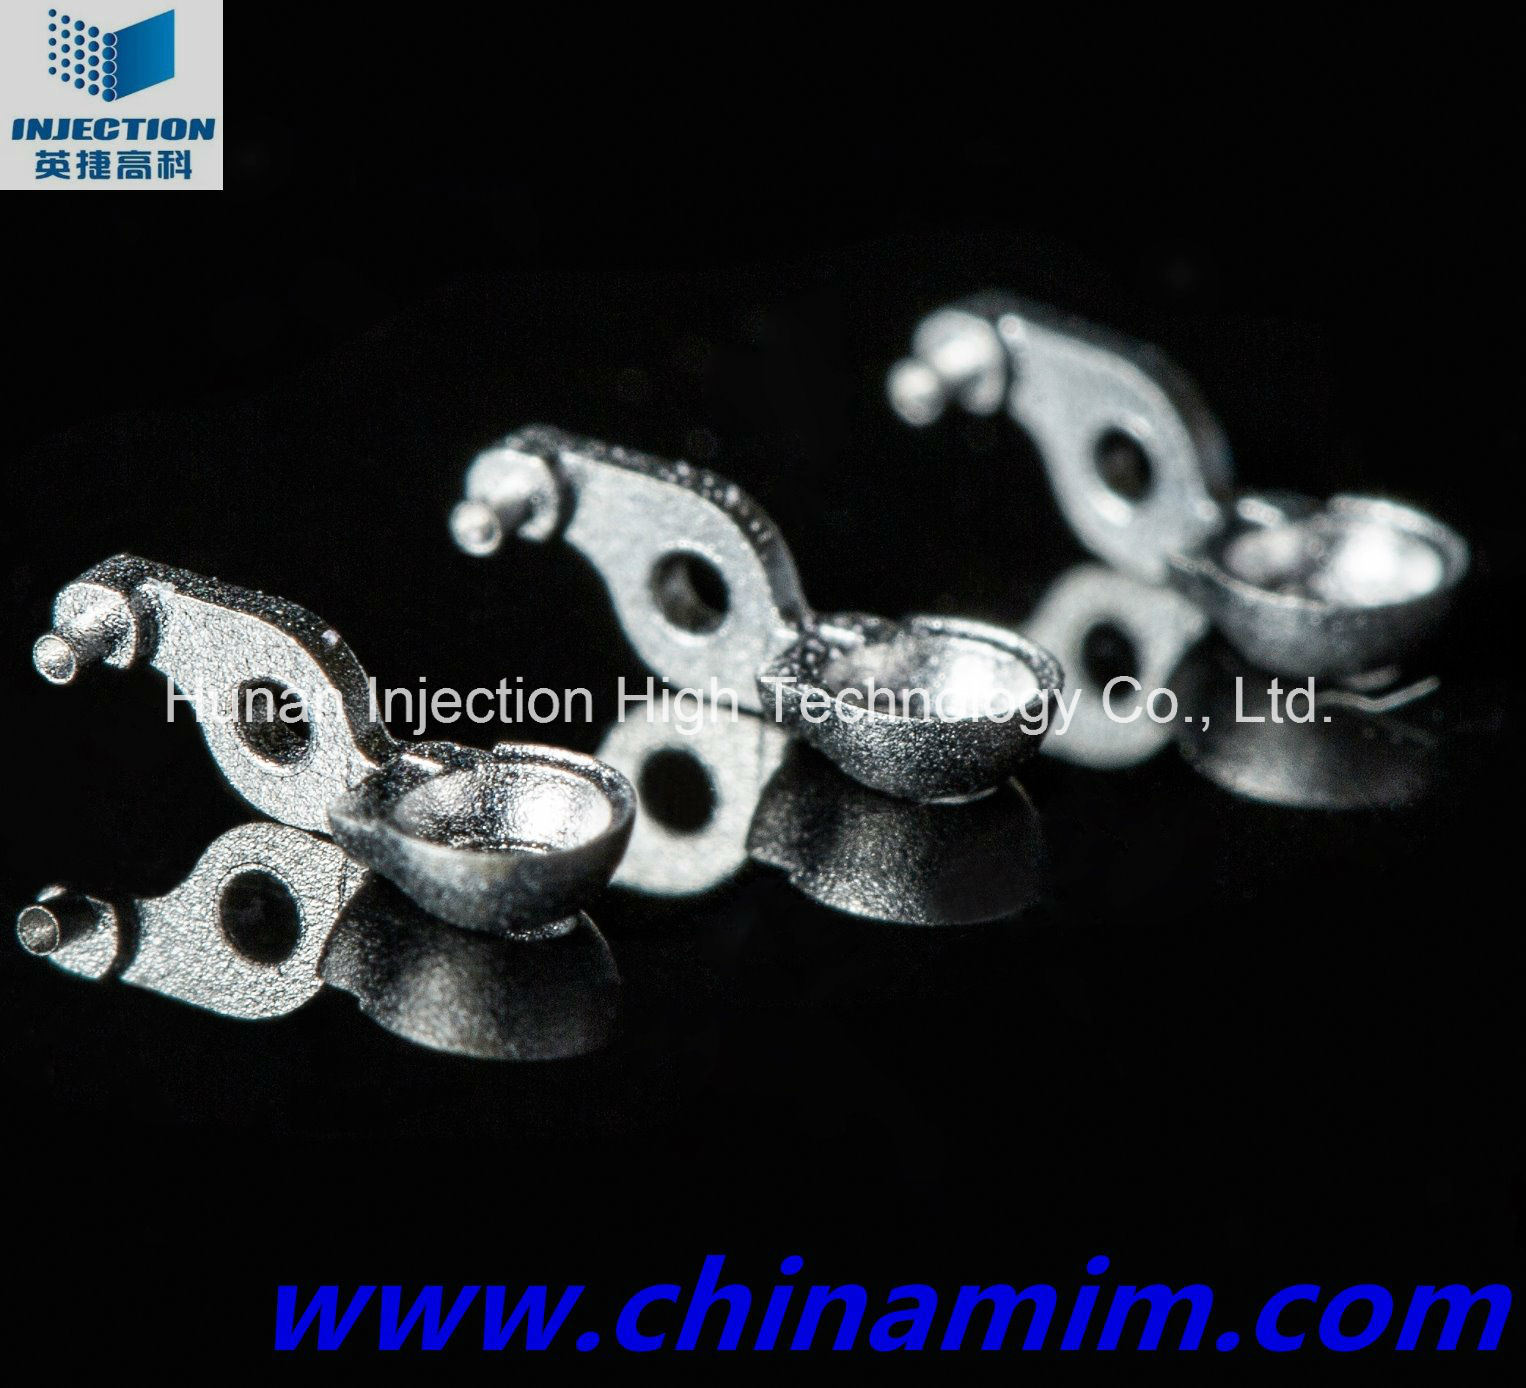 Metal Injection Molding Medical Supply in Endoscopic Instrument